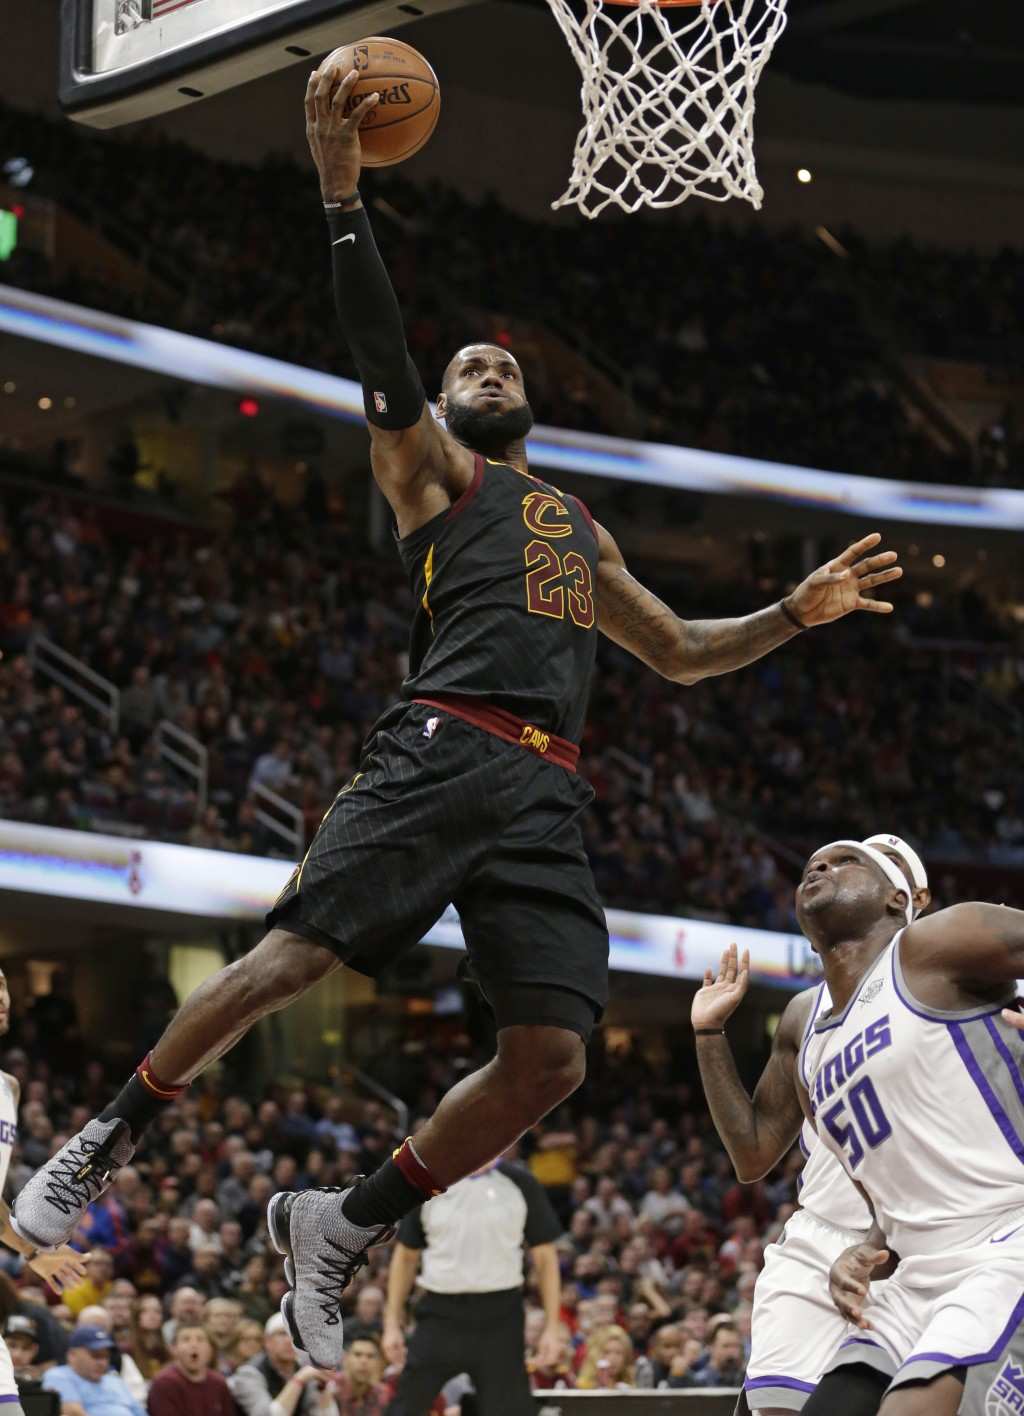 Cleveland Cavaliers' LeBron James (23) drives to the basket against Sacramento Kings' Zach Randolph (50) in the first half of an NBA basketball game,